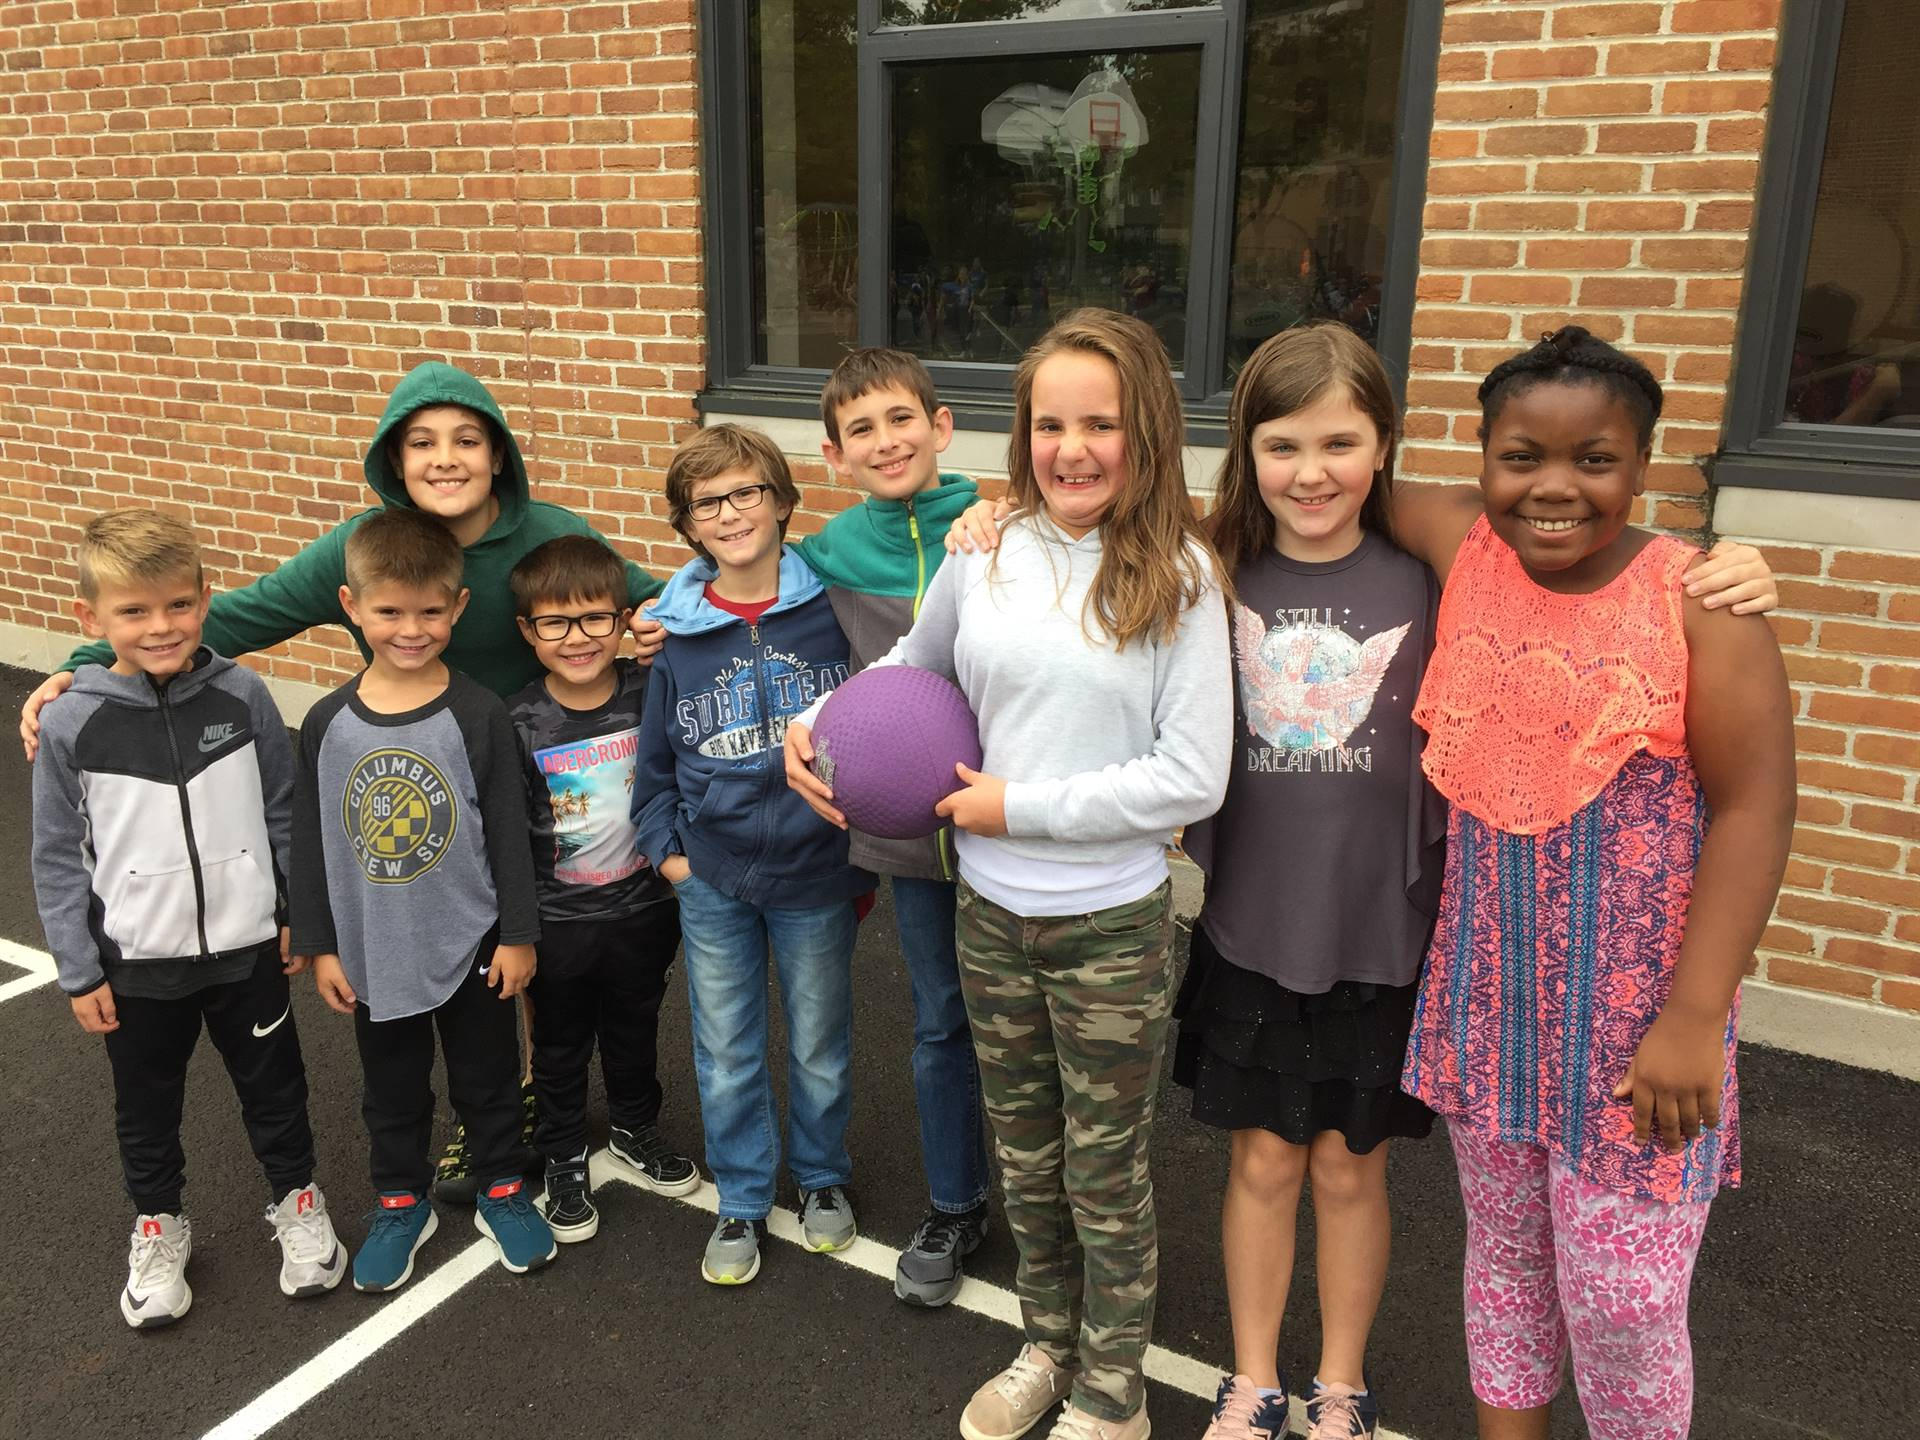 Kindergarten and 5th grade students play together